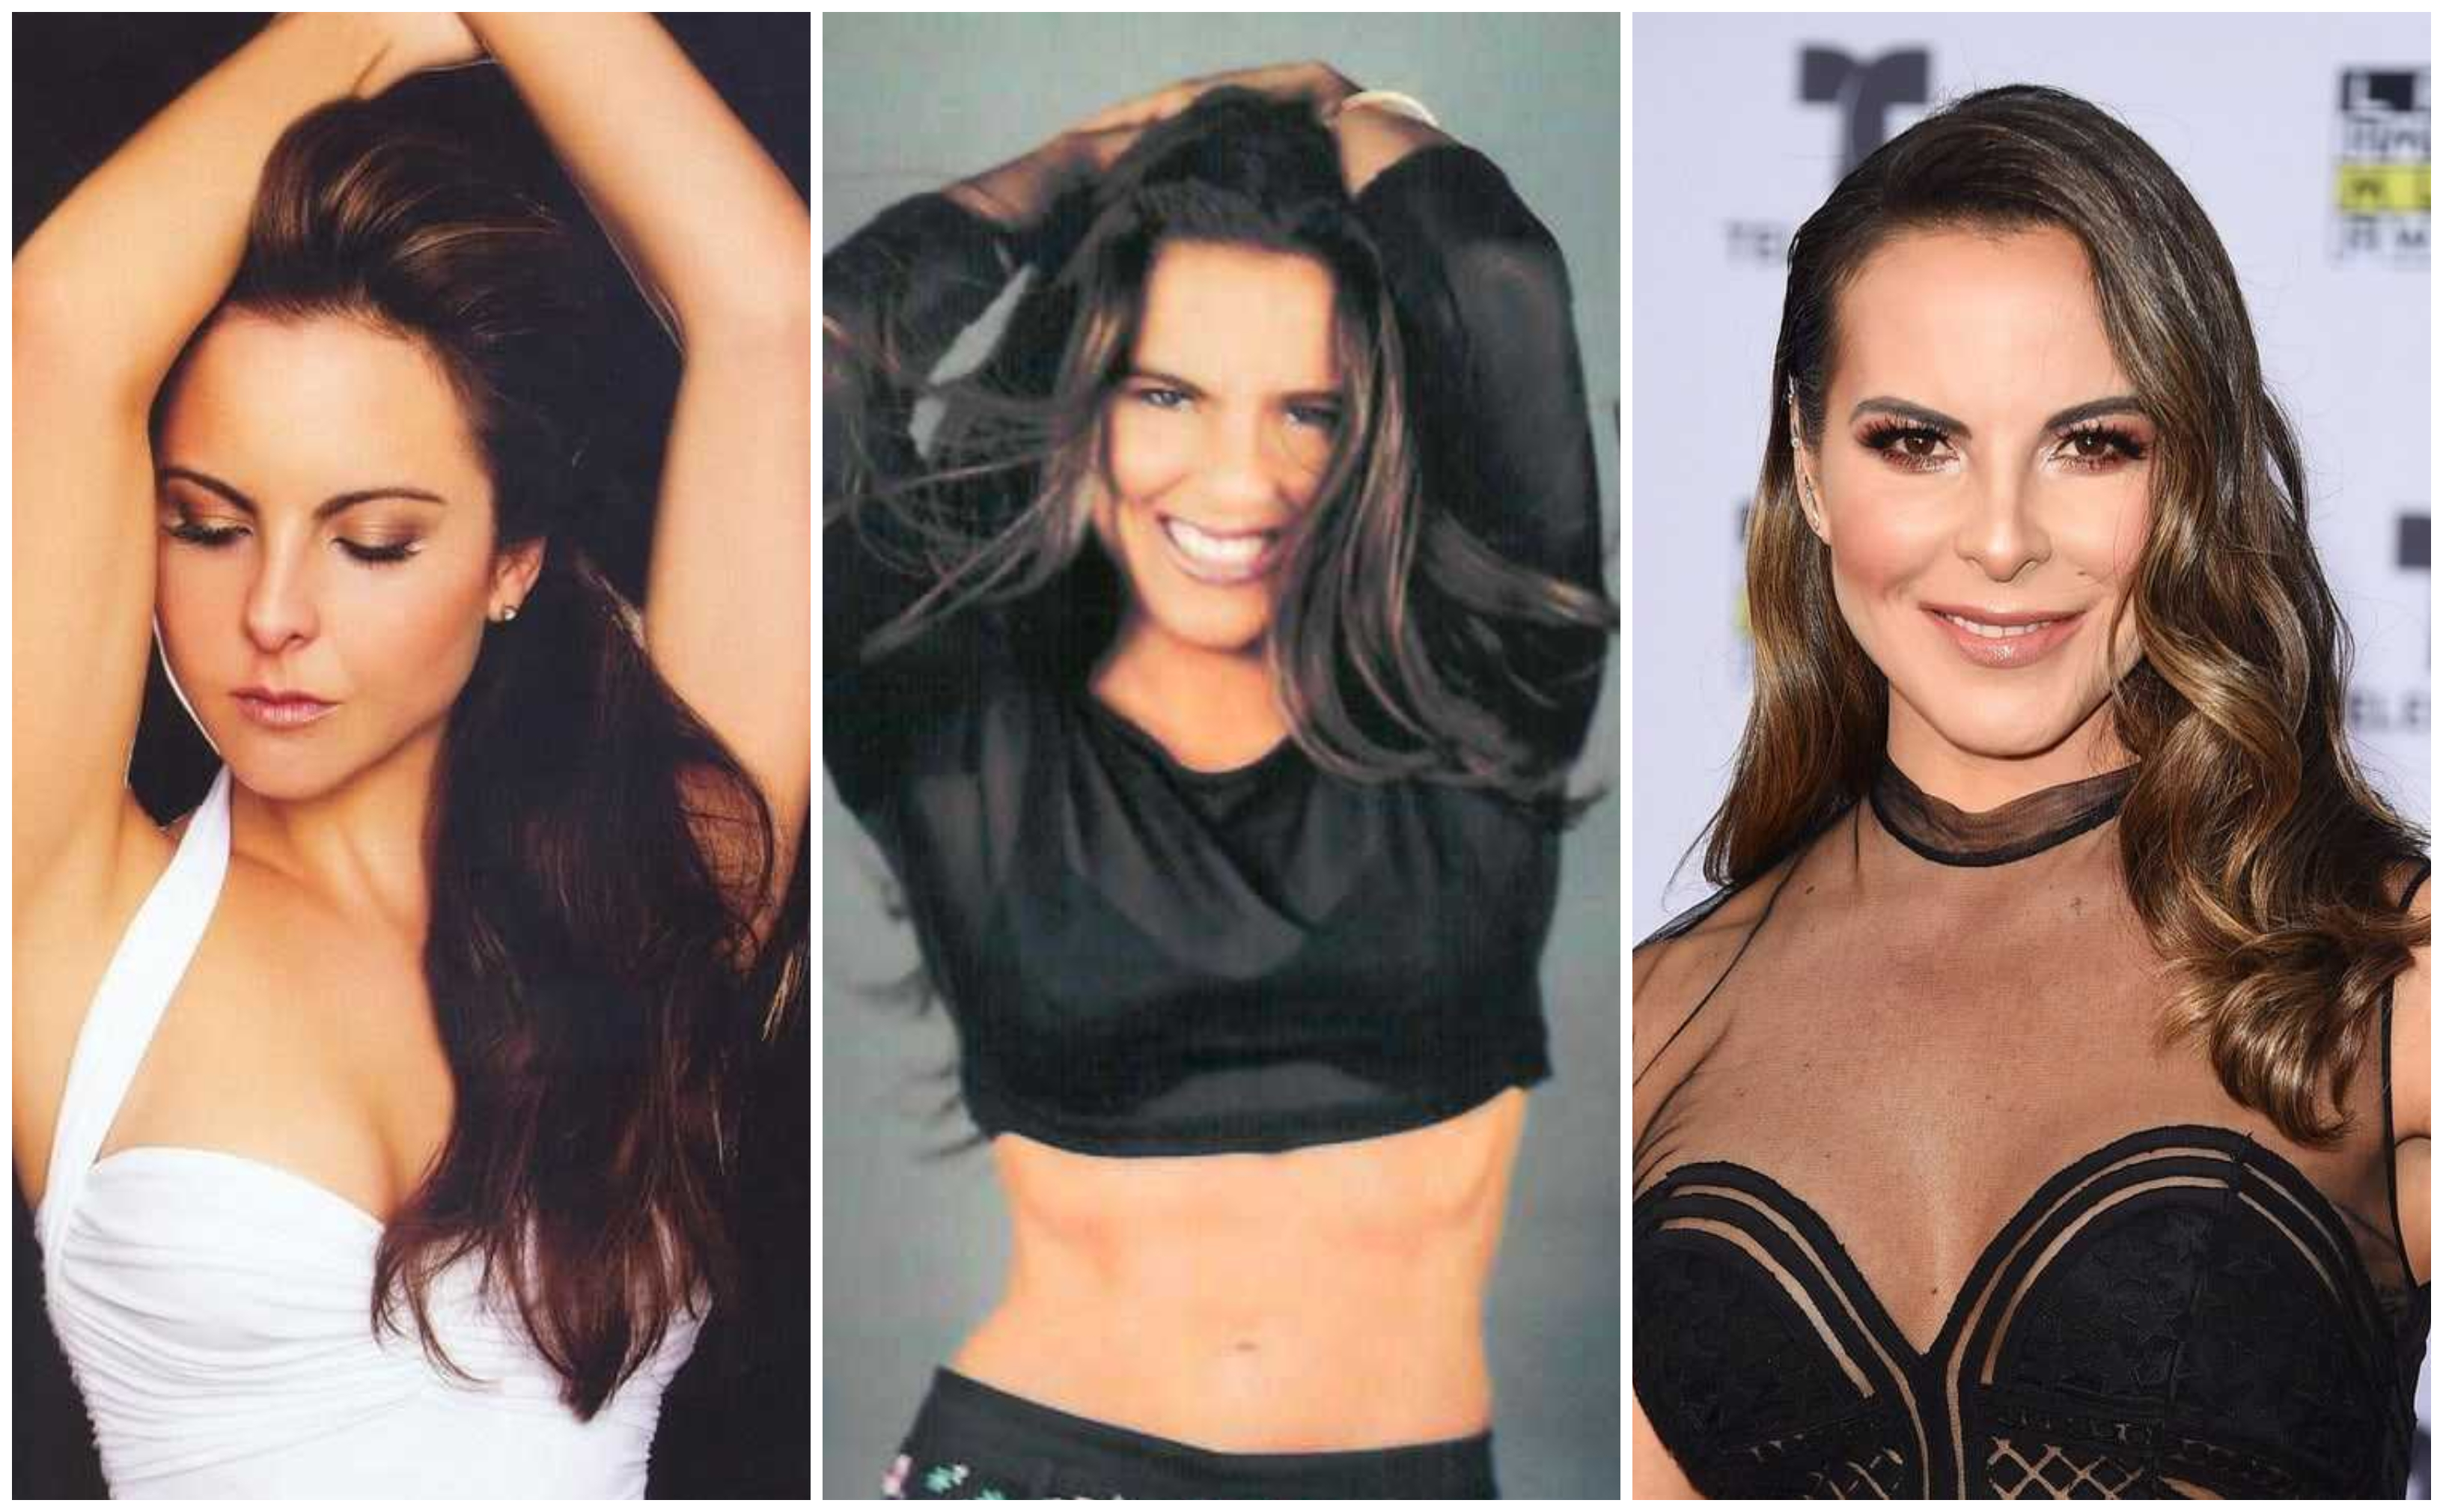 61 Sexy Kate Del Castillo Pictures Are Going To Liven You Up